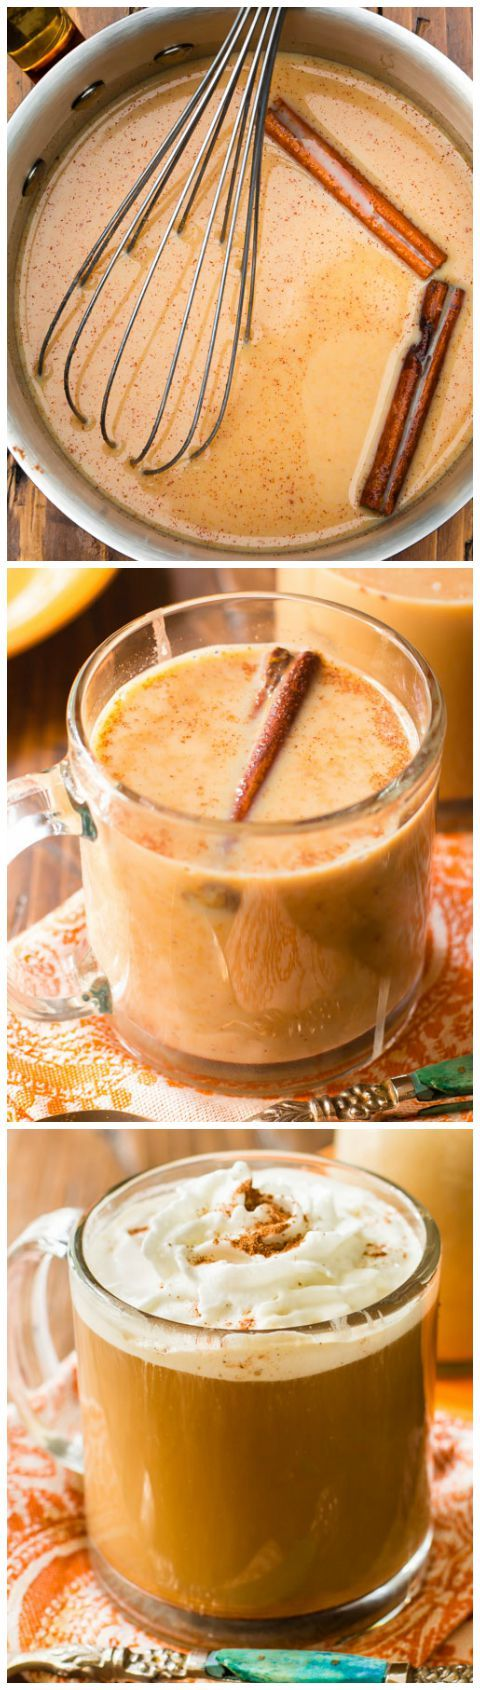 Homemade pumpkin coffee creamer made in 15 minutes with REAL pumpkin puree. Inexpensive and easy!! (Fall pumpkin desserts, drinks, recipes)